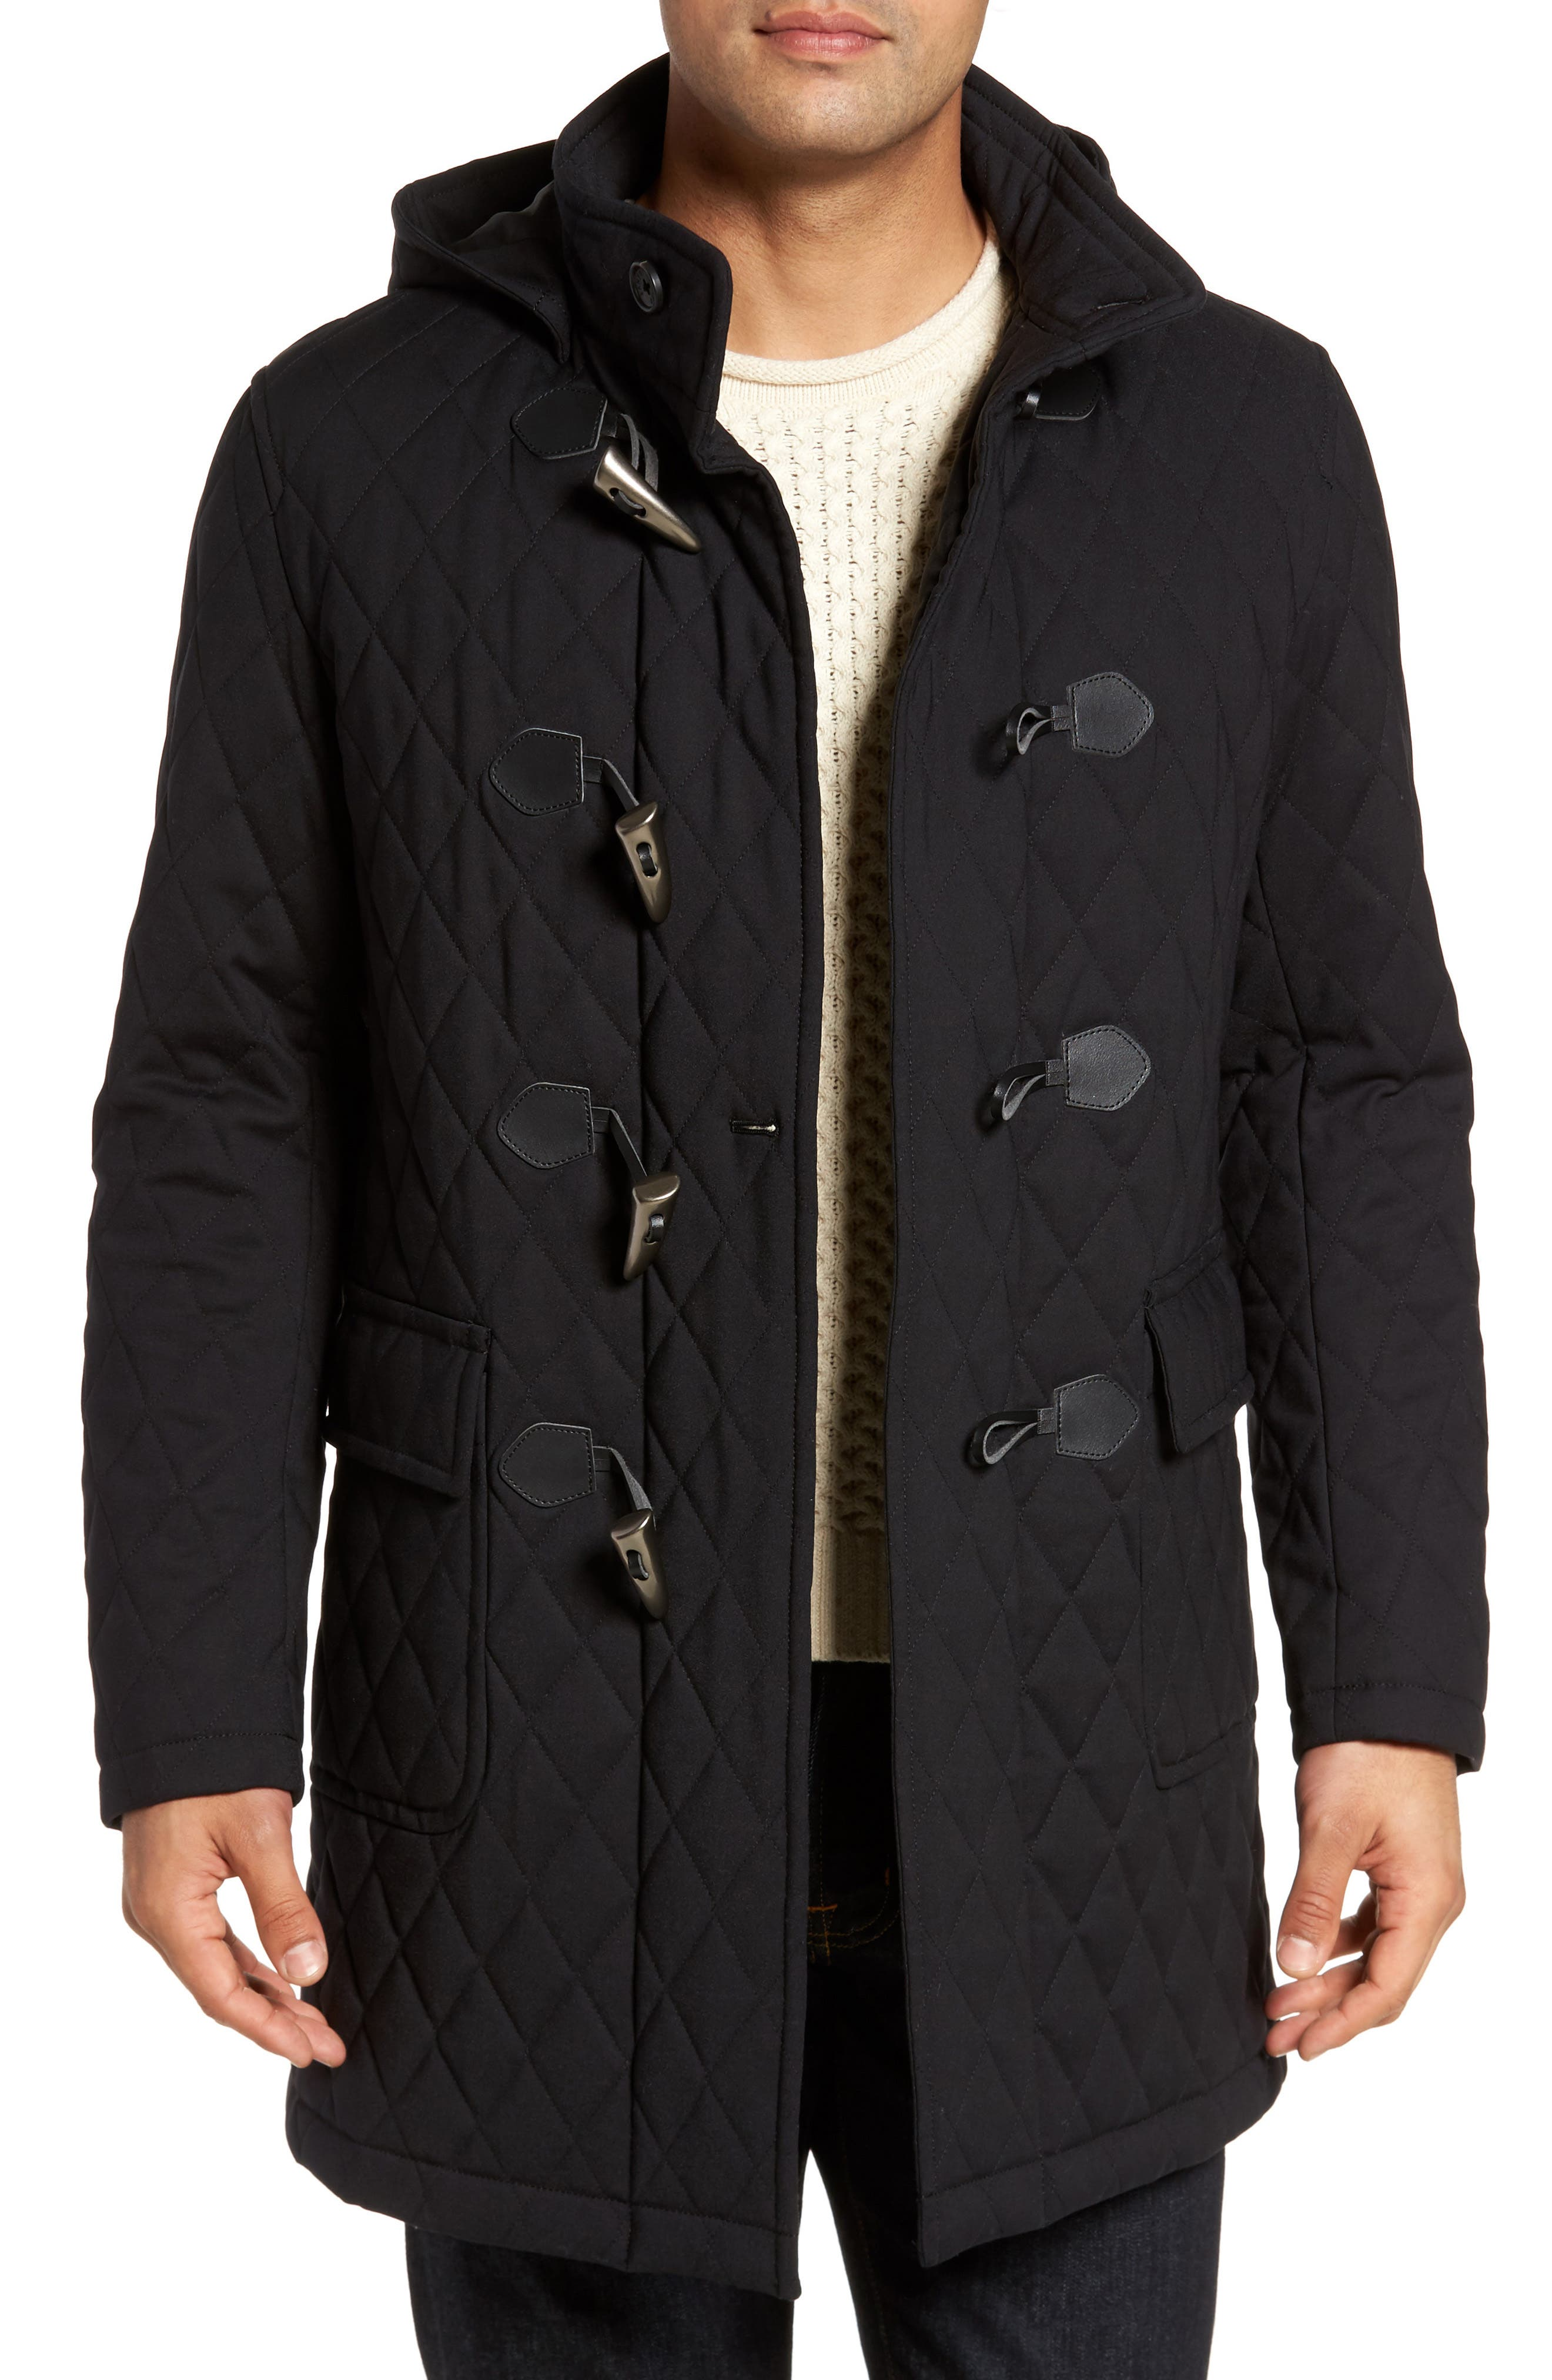 Francisco Quilted Duffle Coat,                         Main,                         color, 009